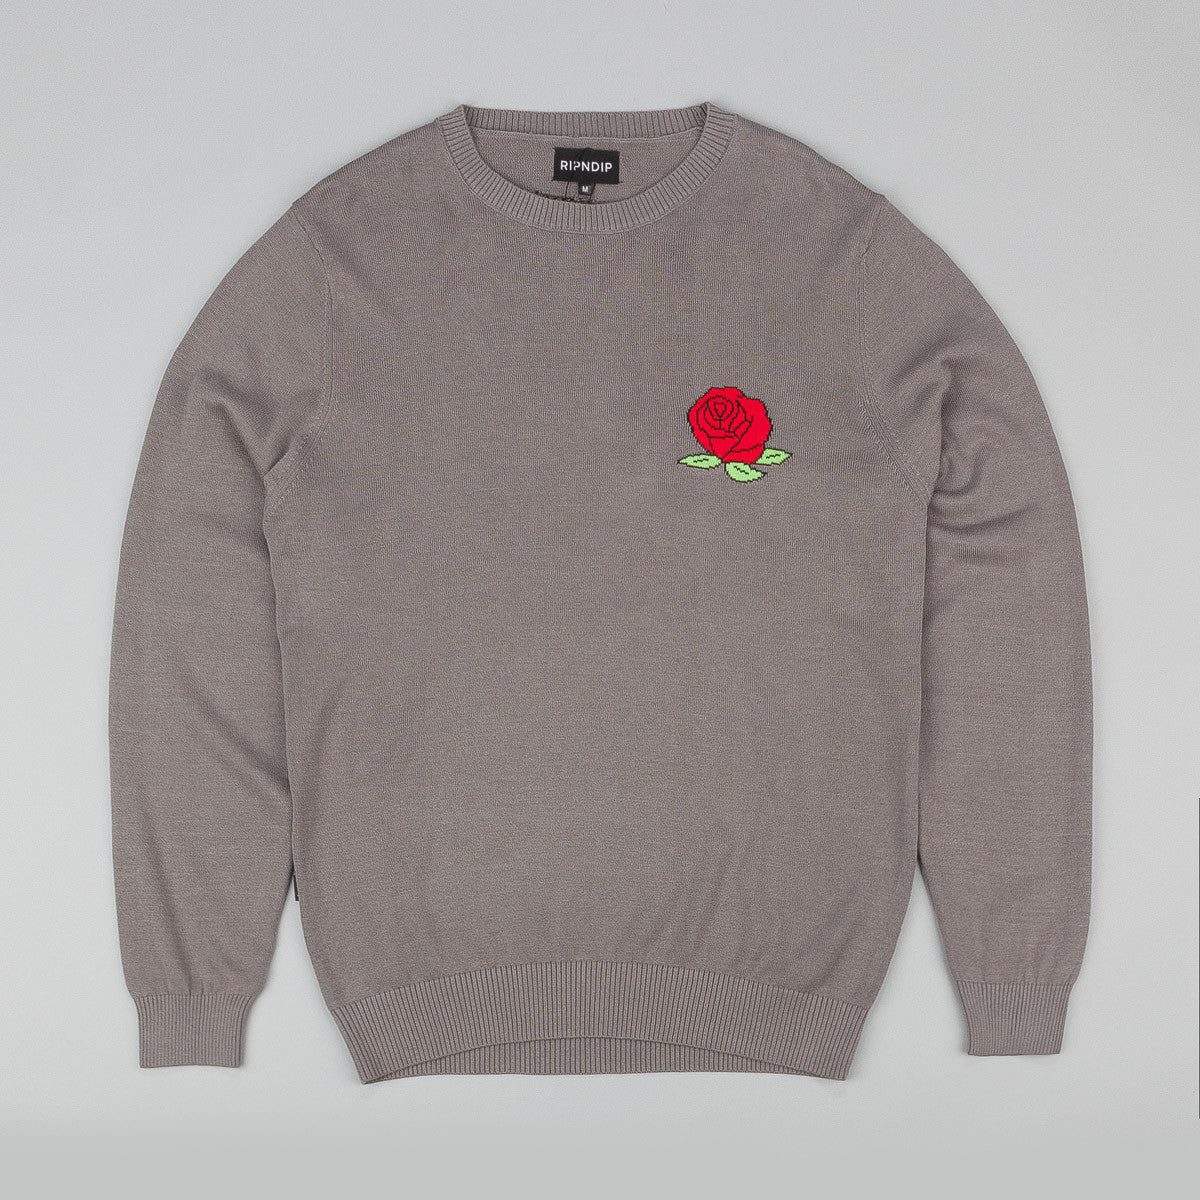 Rip N Dip Lord Nermal Knitted Crew Neck Sweater